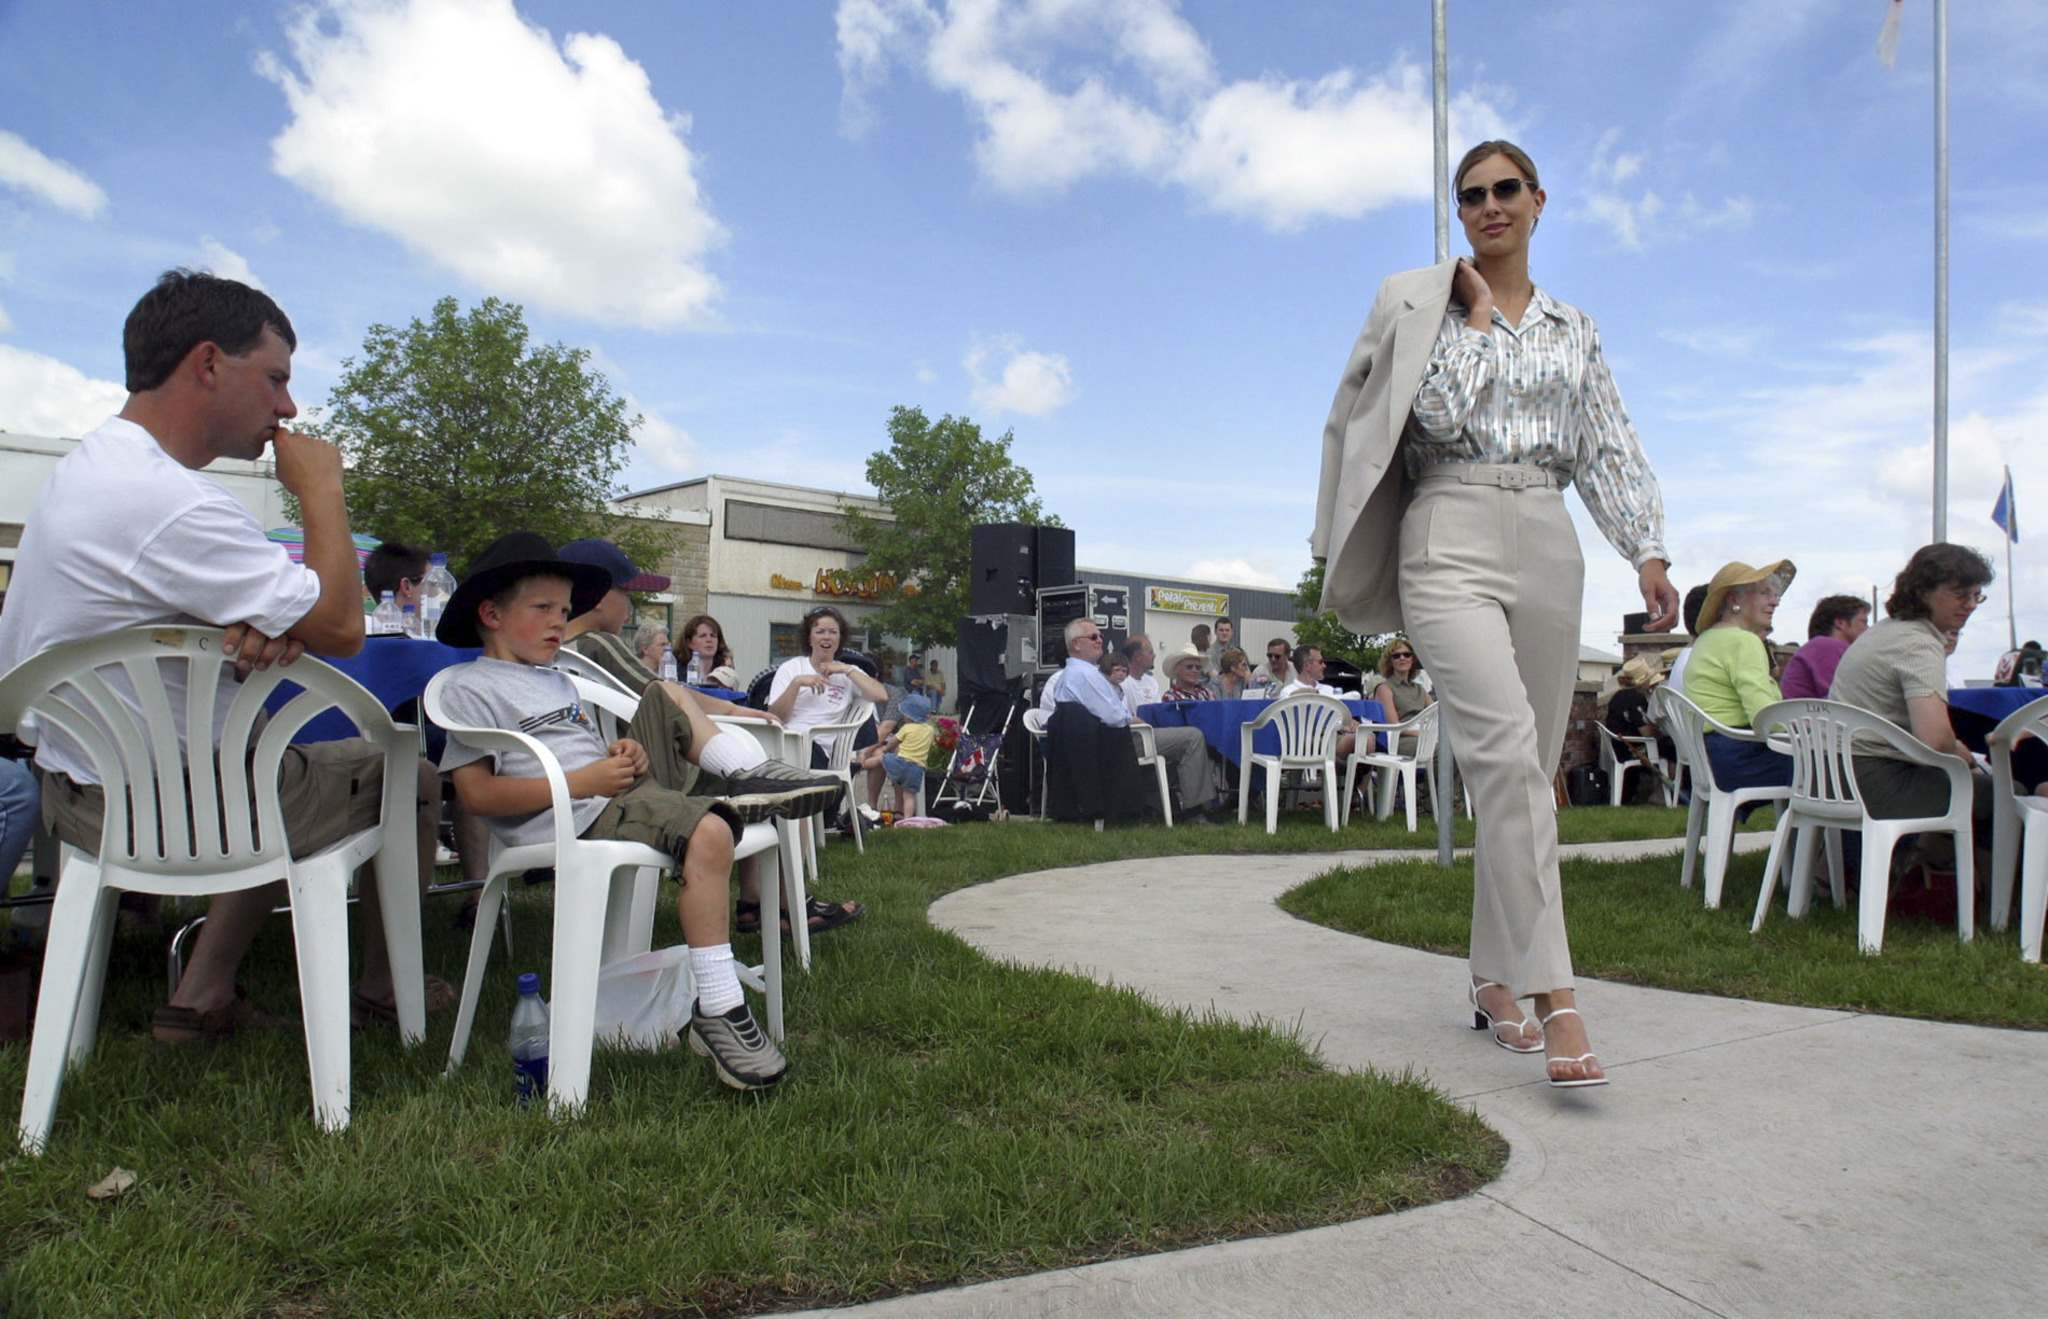 A model walks through the newly opened Nygard Park during a fashion show on June 22, 2002 (Mike Aporius / Winnipeg Free Press files)</p>